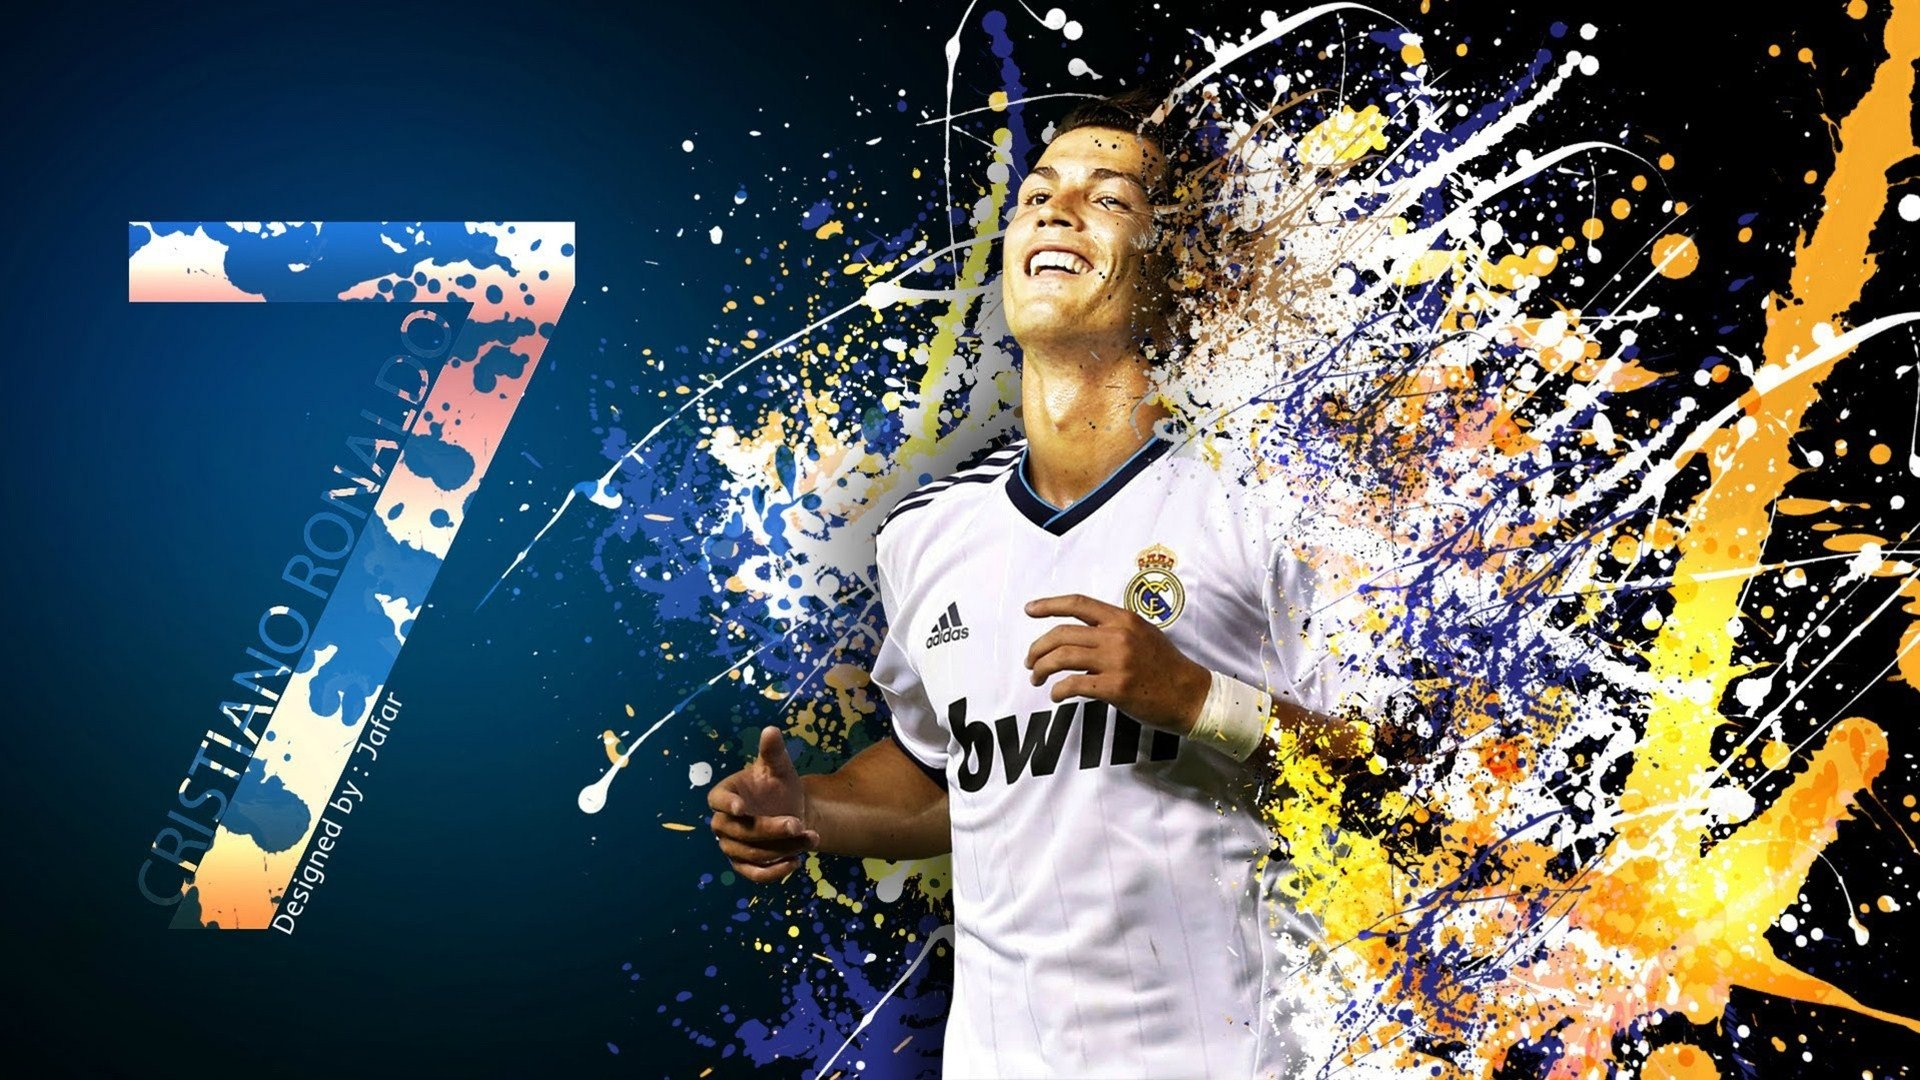 77 cristiano ronaldo hd wallpapers | background images - wallpaper